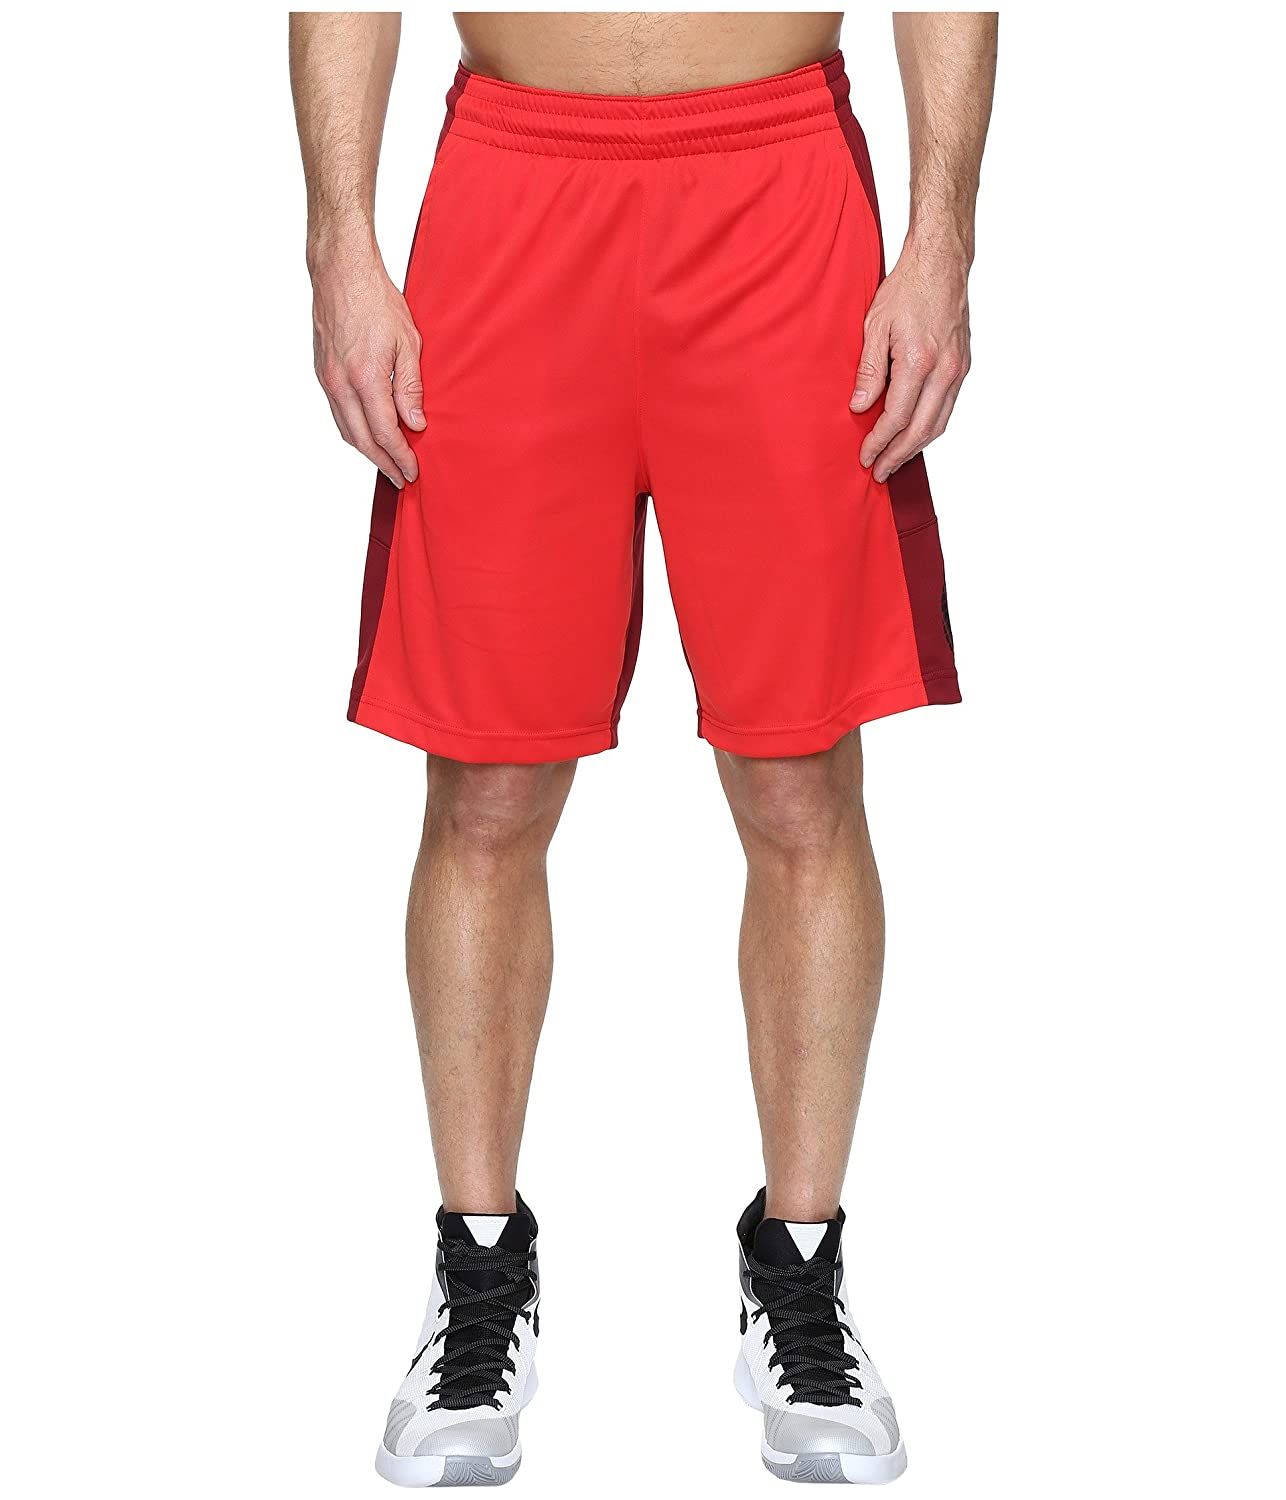 [ナイキ] Nike メンズ Basketball Short パンツ [並行輸入品] B01NBF96TL University Red/Team Red/Black/Black XX-Large